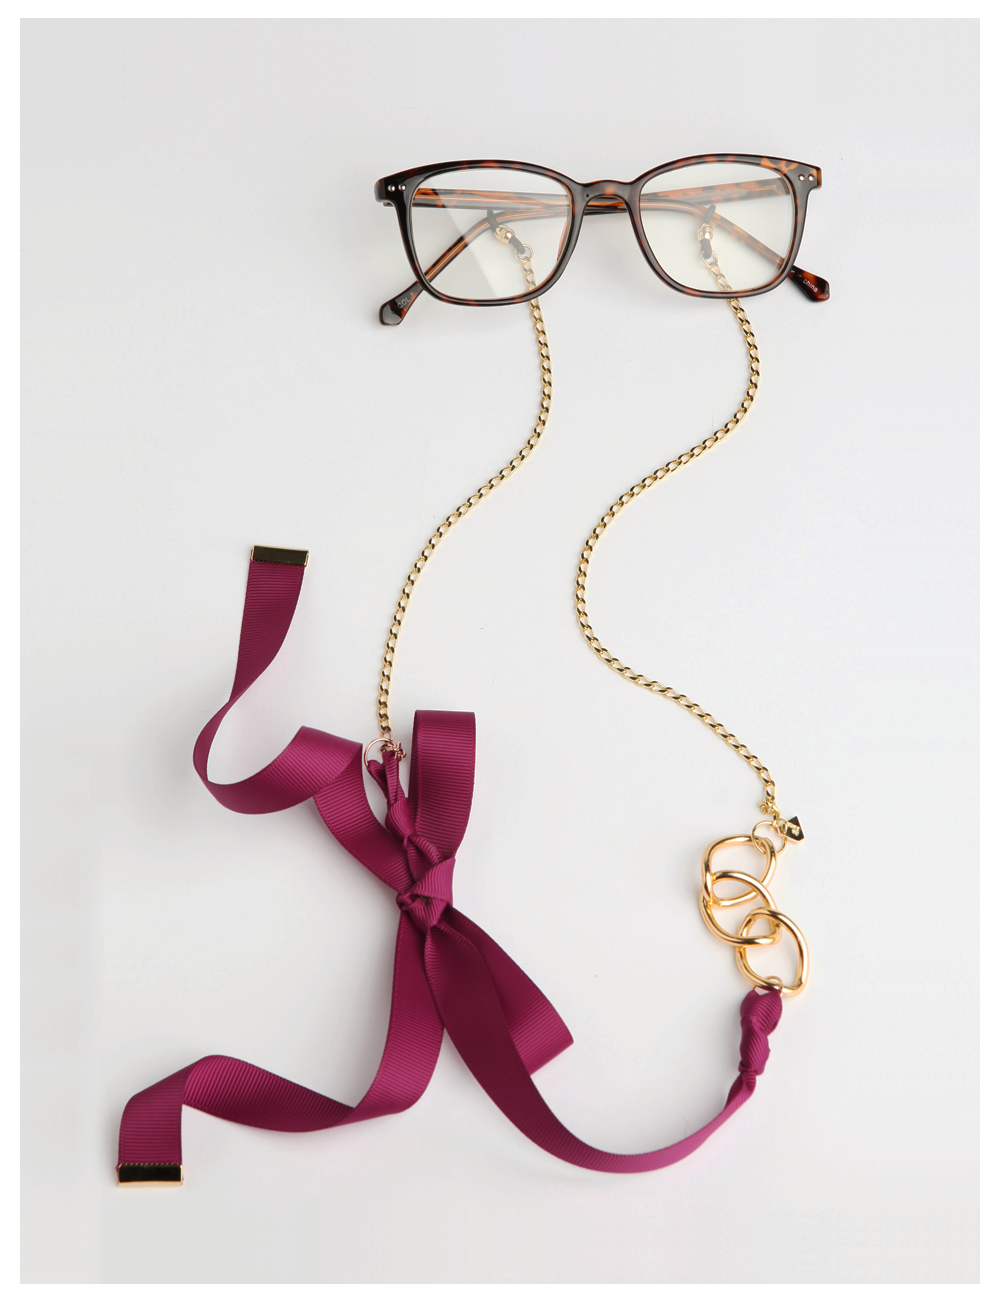 NANA BONNY / plum_EYE GLASS CHAIN